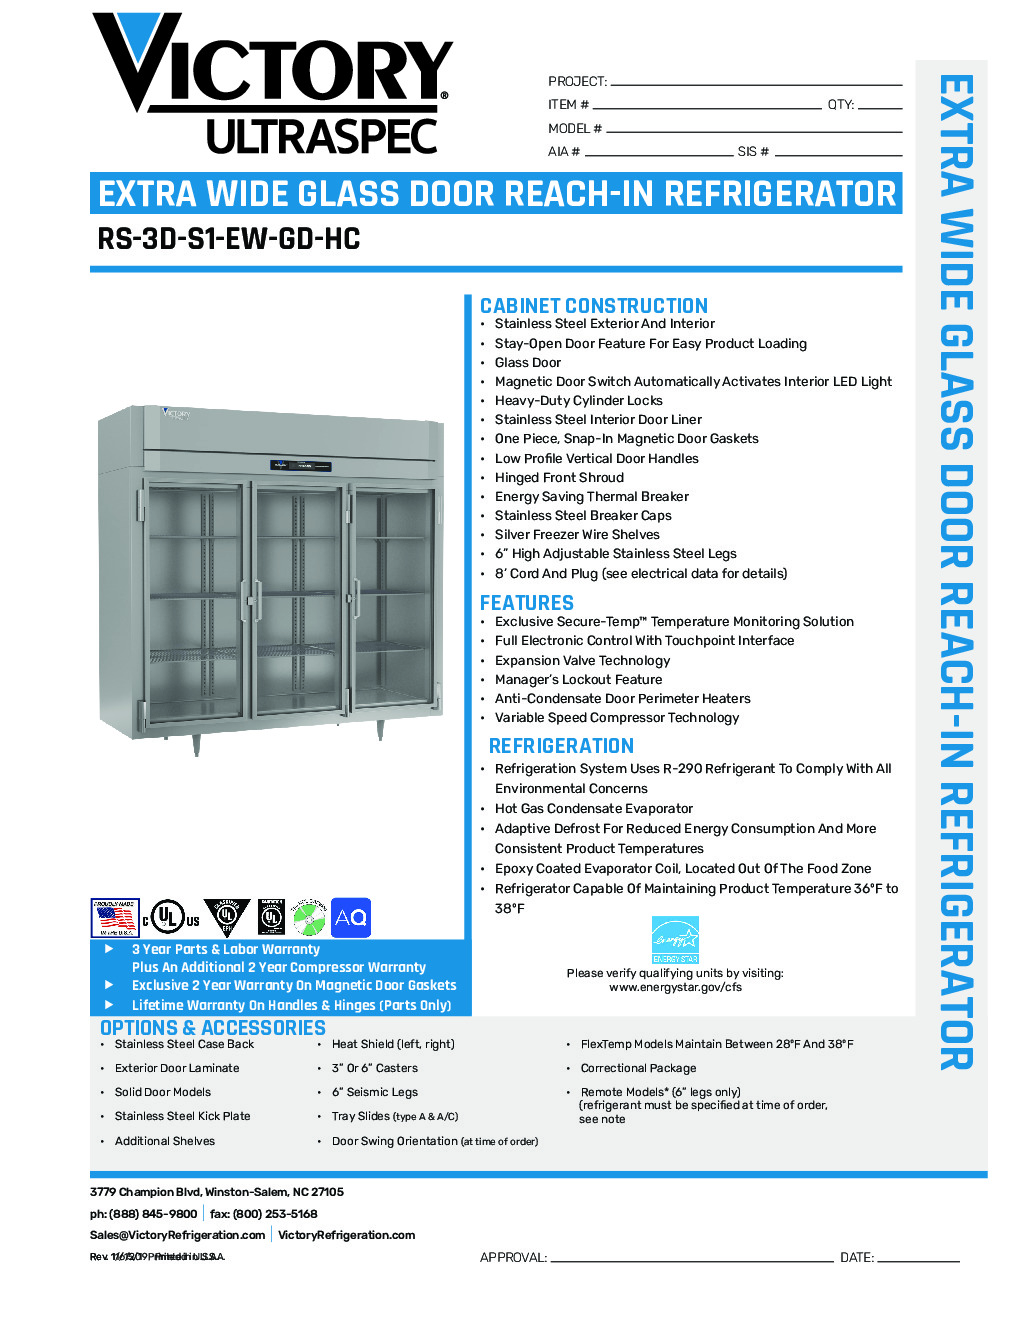 Victory RS-3D-S1-EW-GD-HC Reach-In Refrigerator